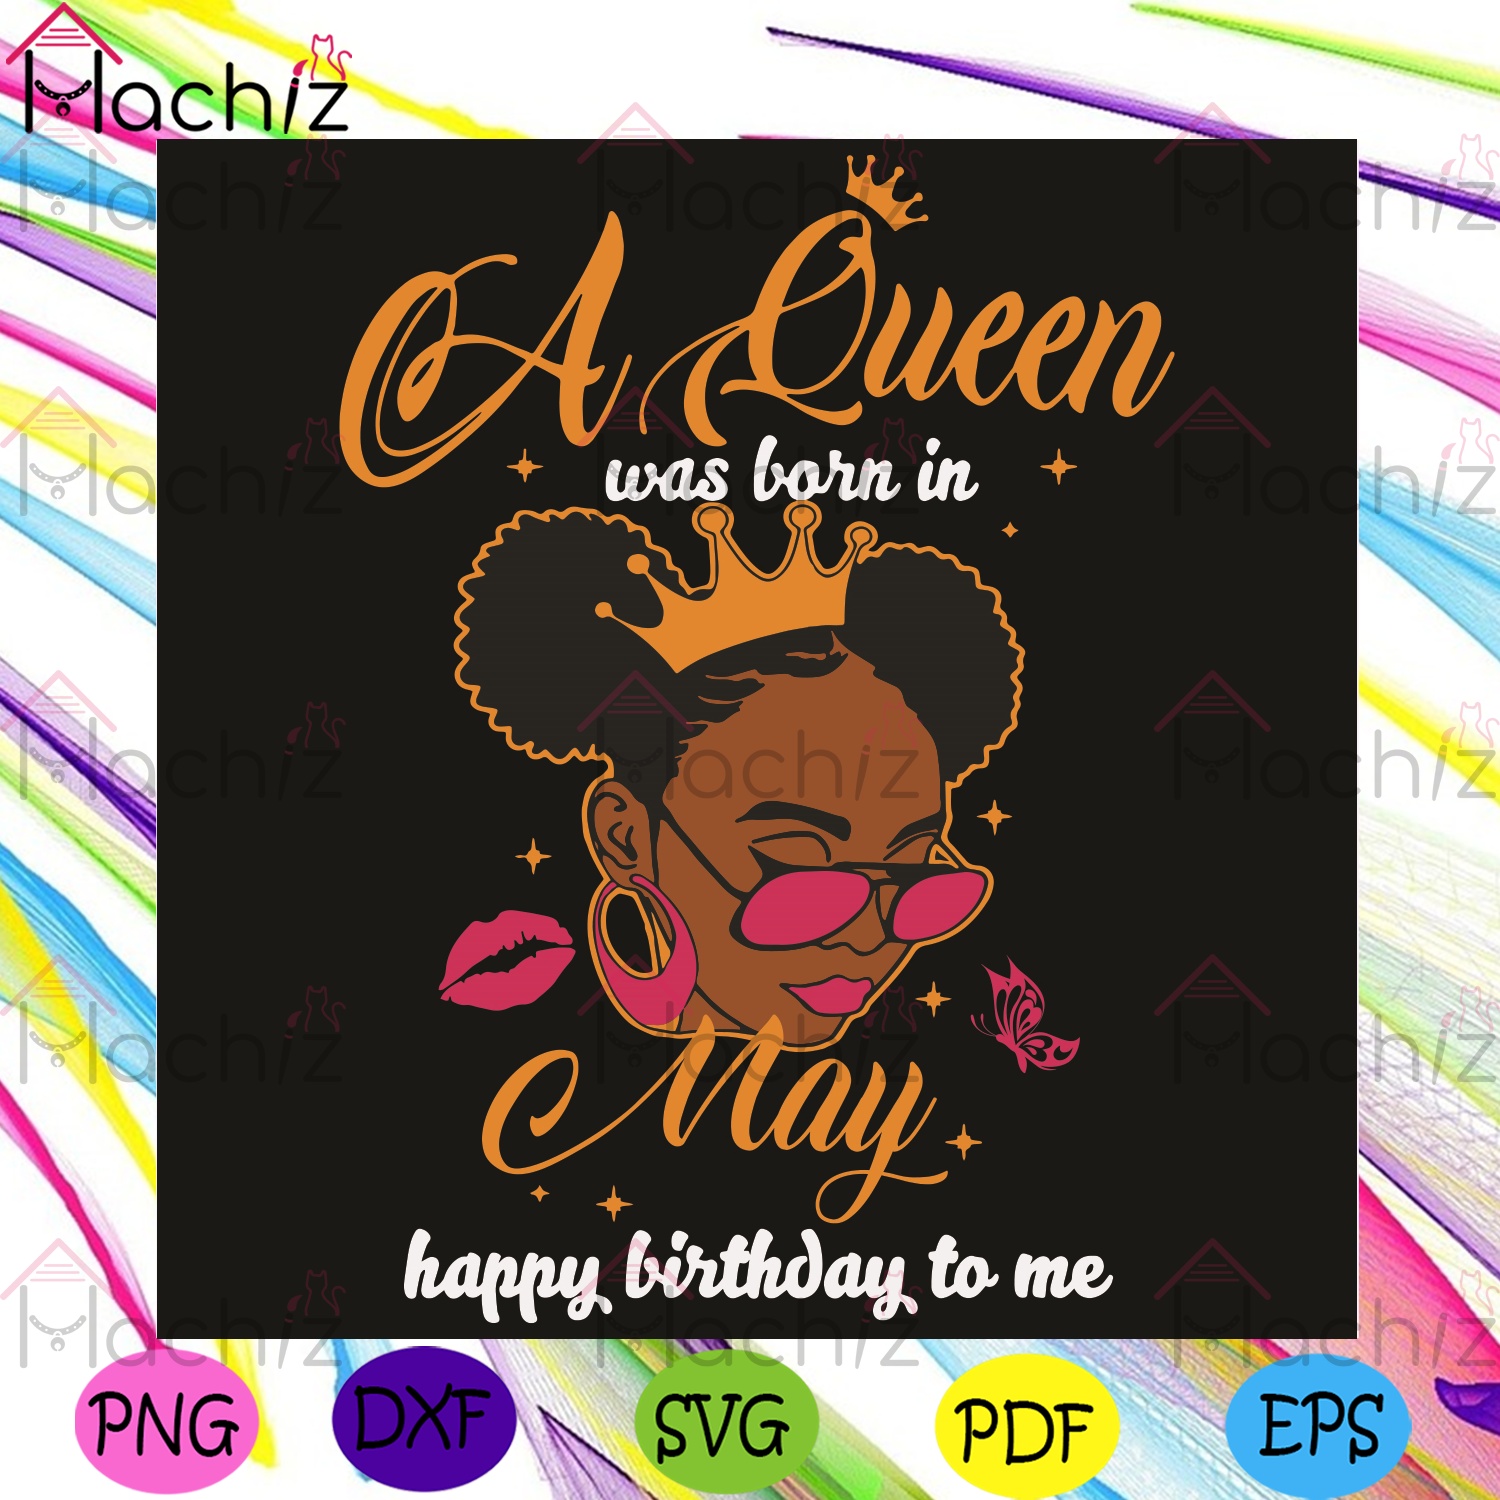 A queen was born in may happy birthday to me svg, birthday svg, queen born in may svg, girl born in may svg, happy birthday svg, may queen svg, may birthday svg, black girl svg, birthday gifts svg, birthday party svg